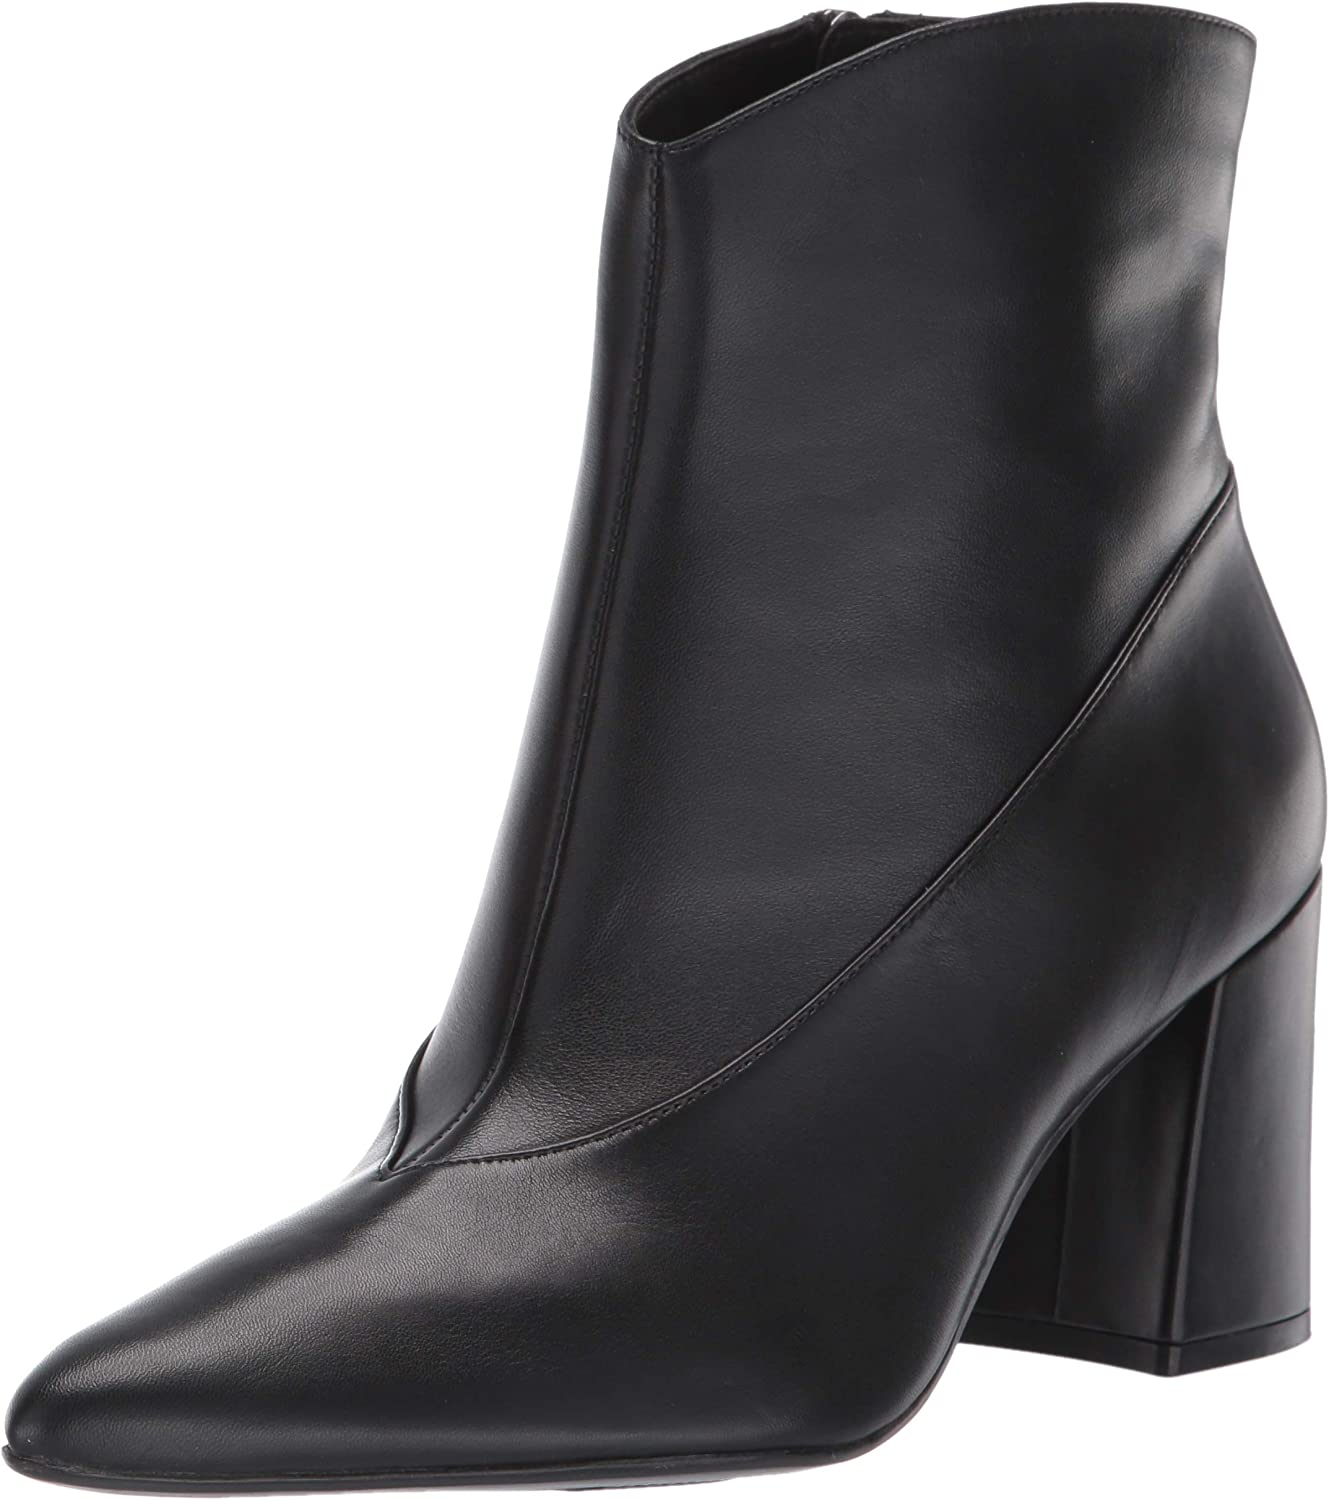 Naturalizer Today's only Women's Hart Ankle High material Boot Booties